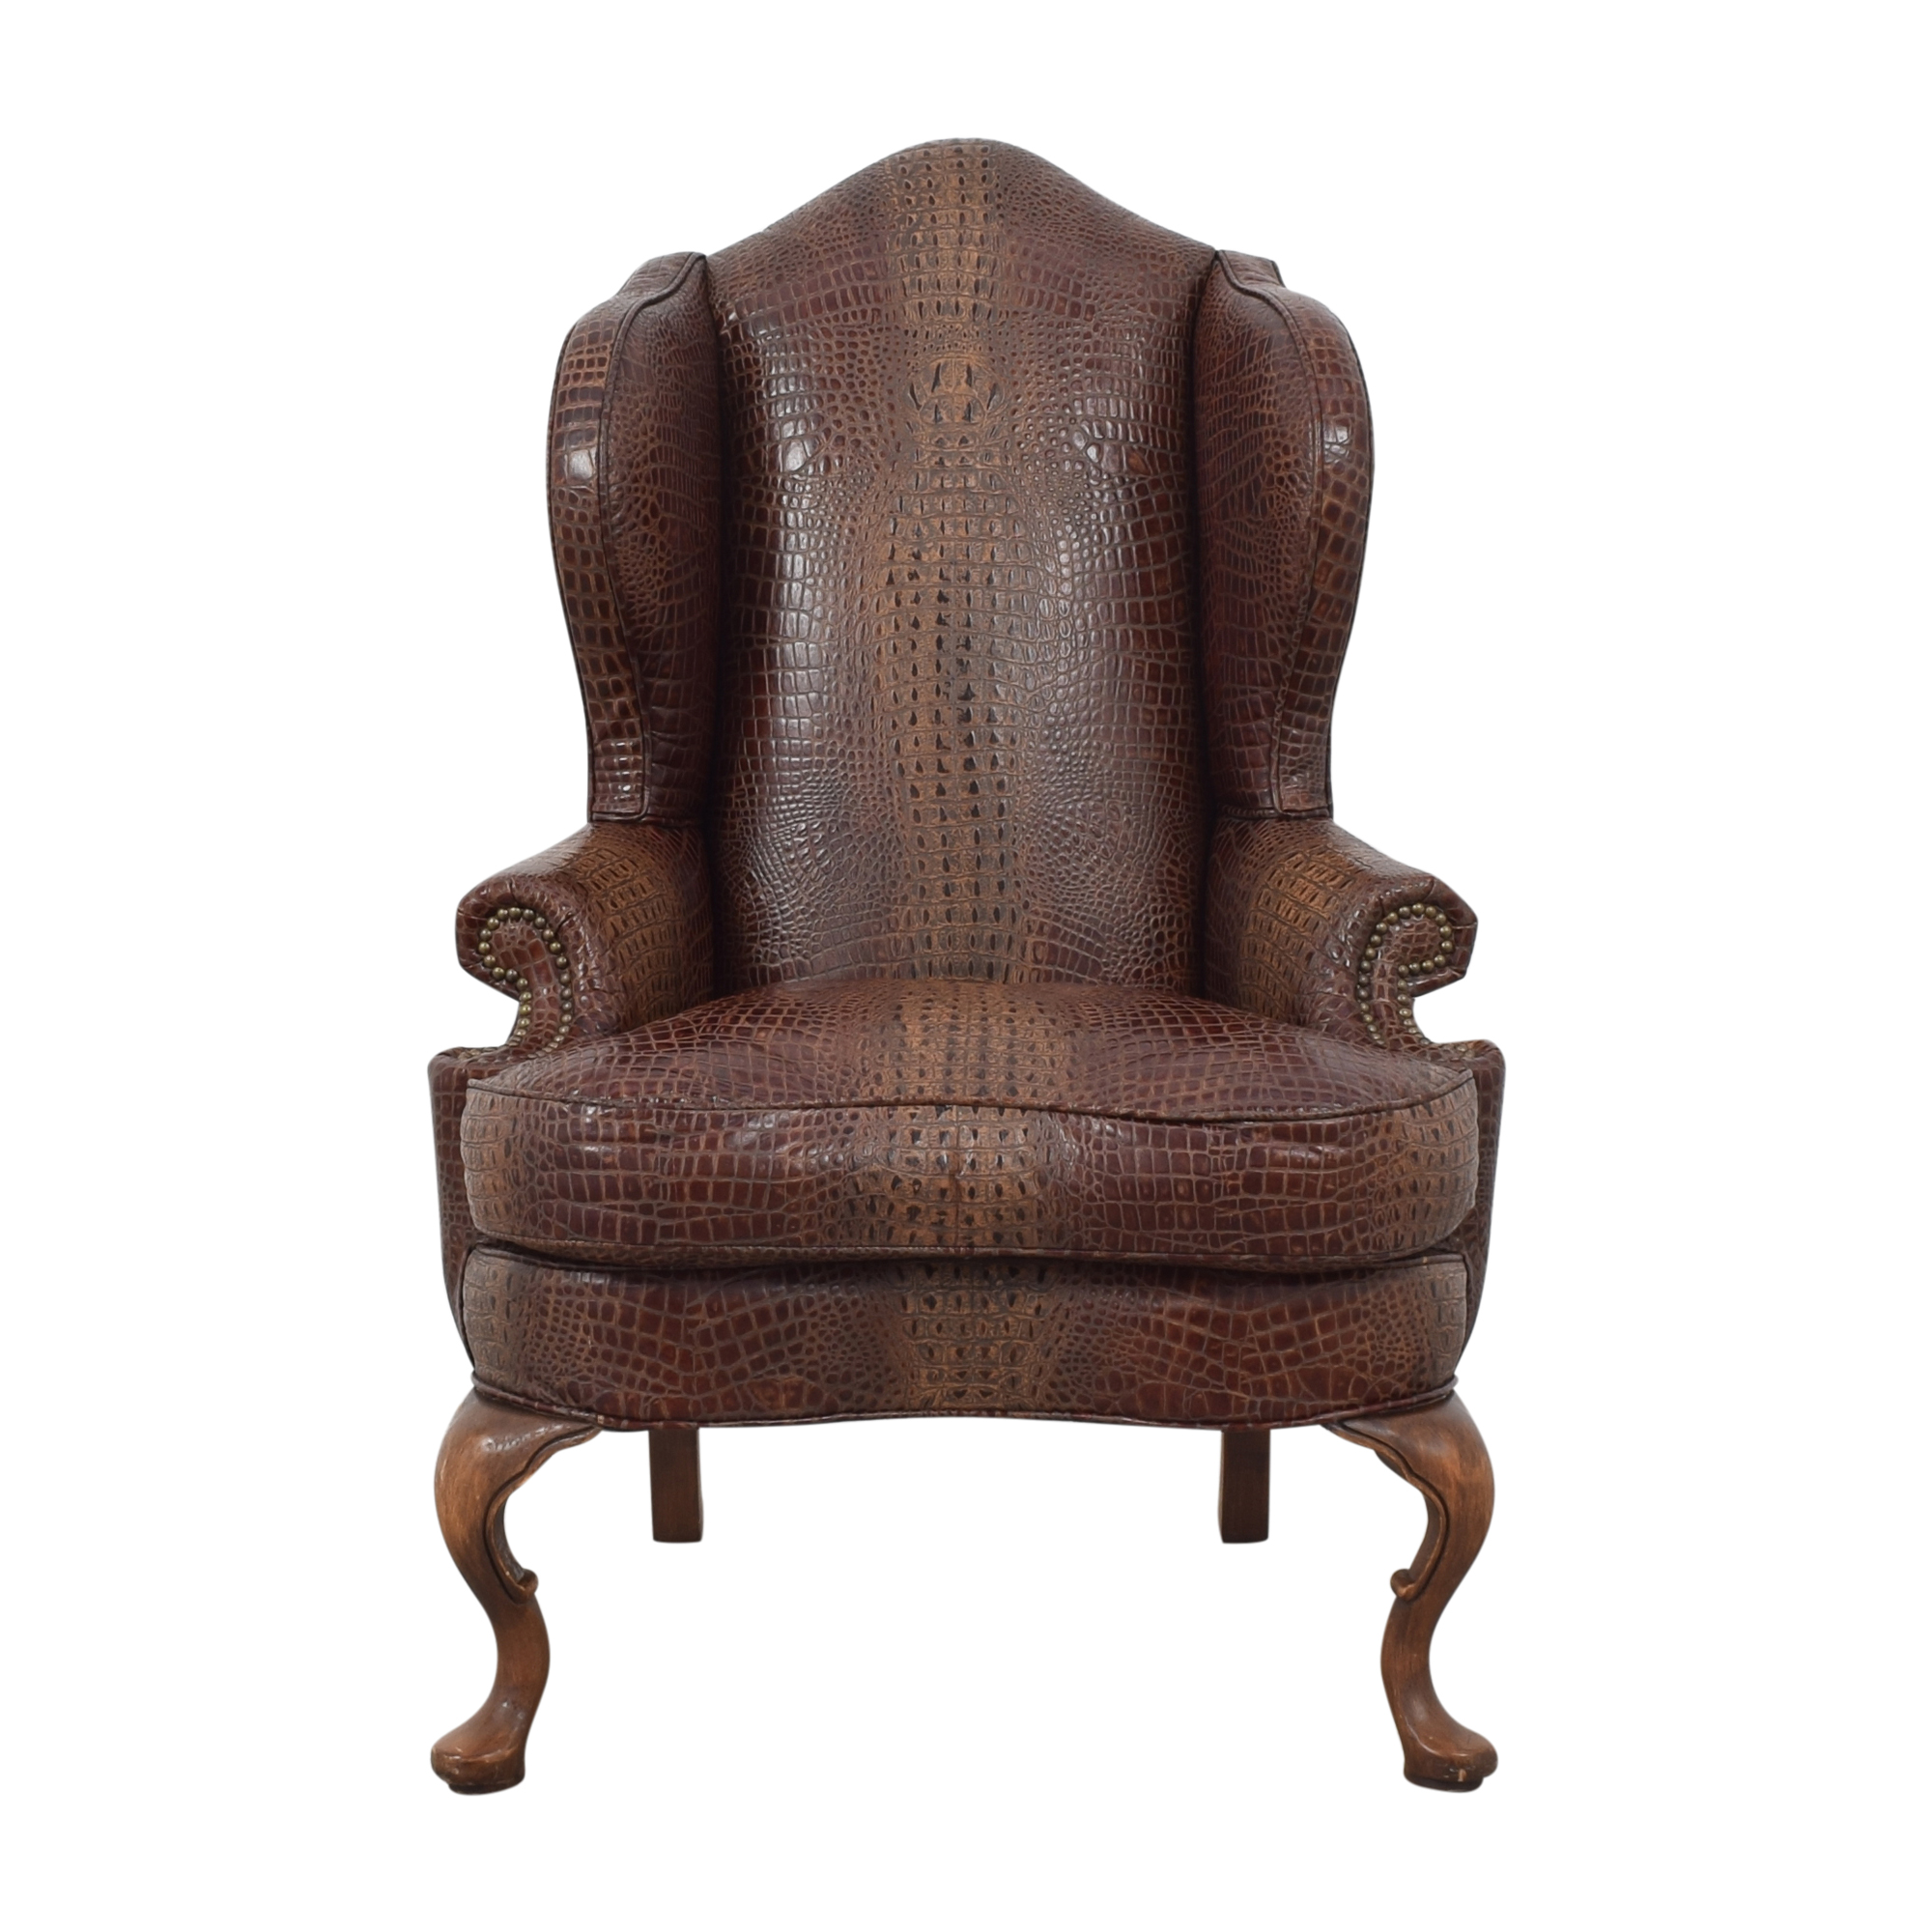 buy Old Hickory Tannery Old Hickory Tannery Wing Chair online